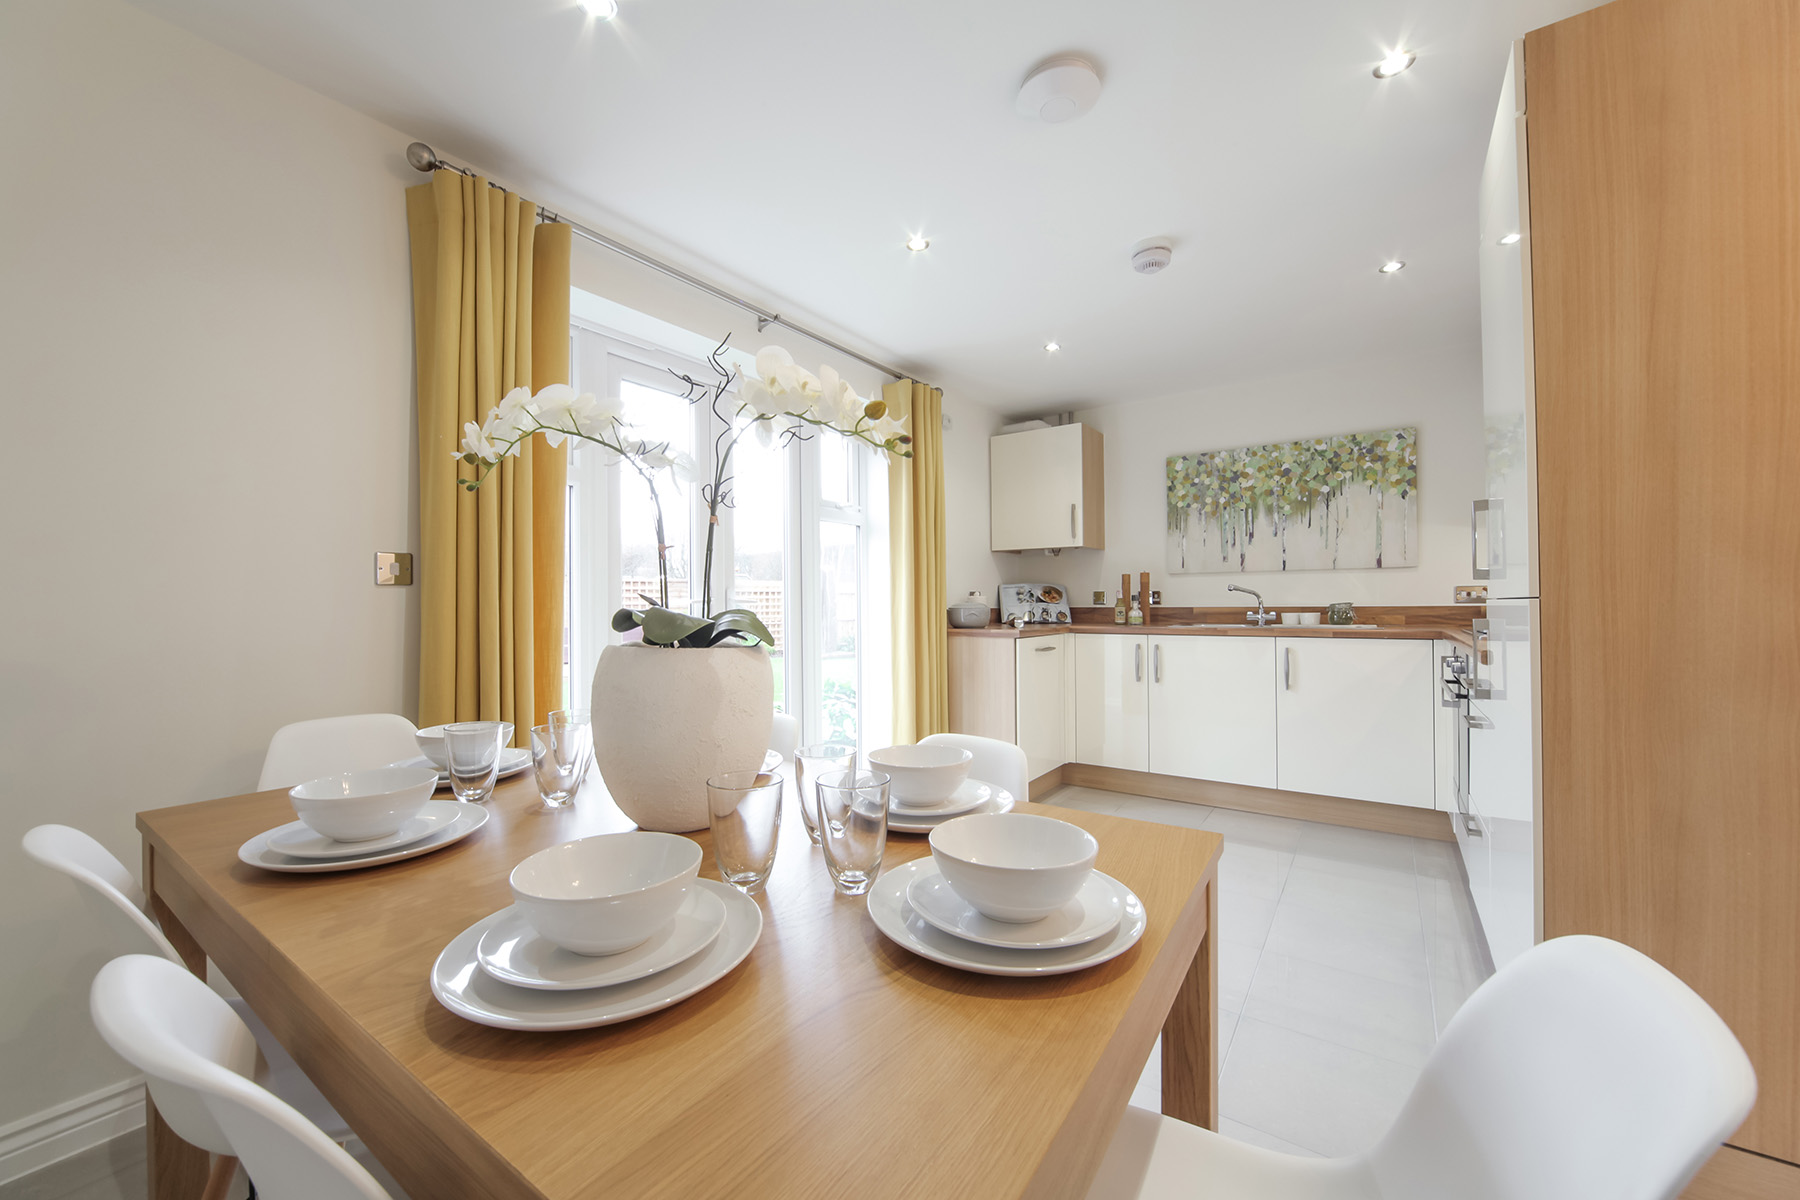 TW Exeter - Buckingham Heights - Gosford example kitchen 2